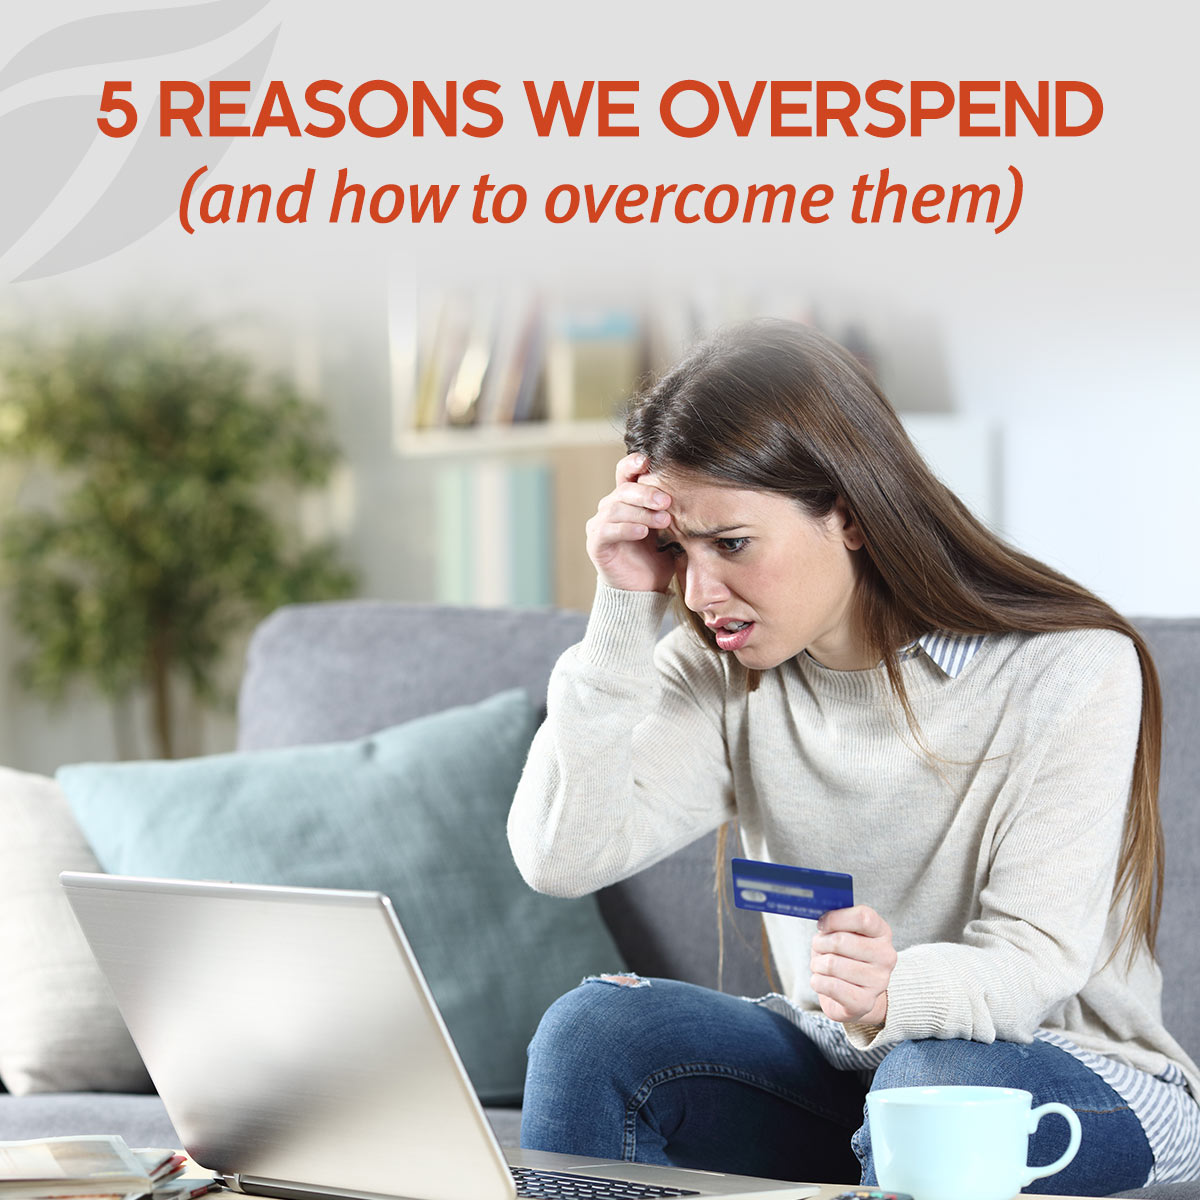 Five Reasons We Overspend and How to Overcome Them